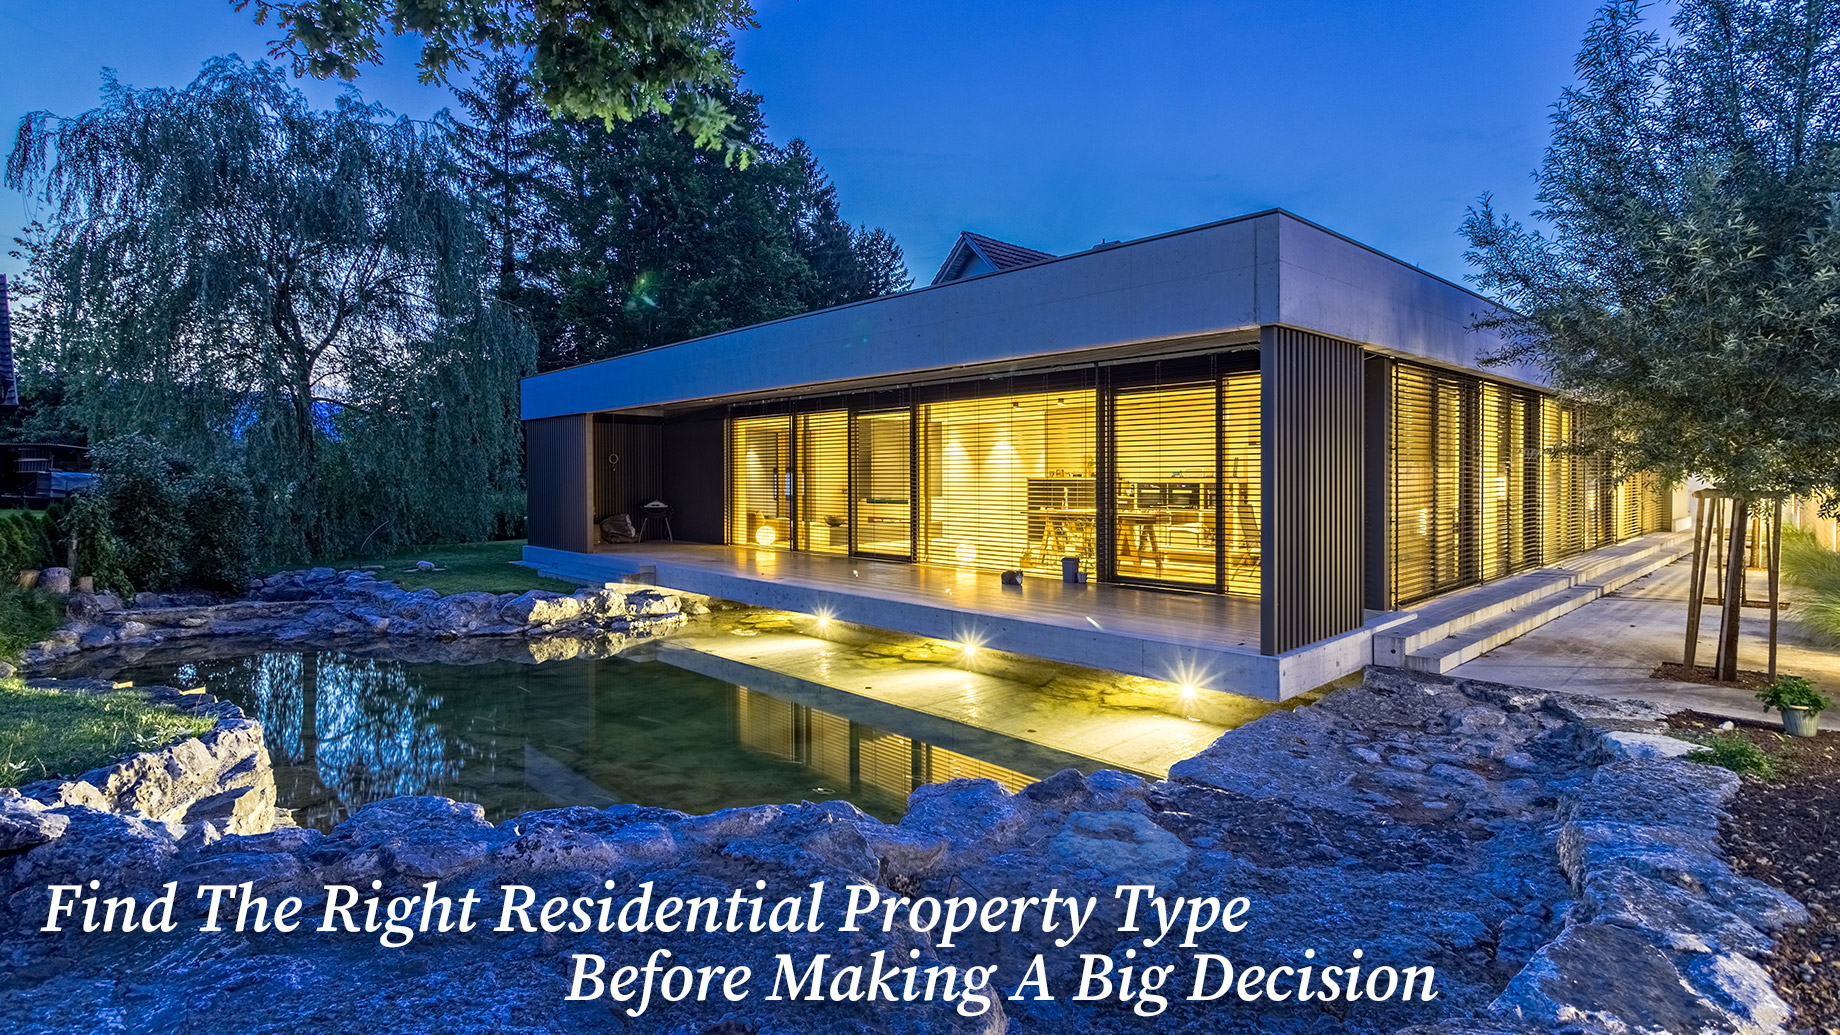 Find The Right Residential Property Type Before Making A Big Decision